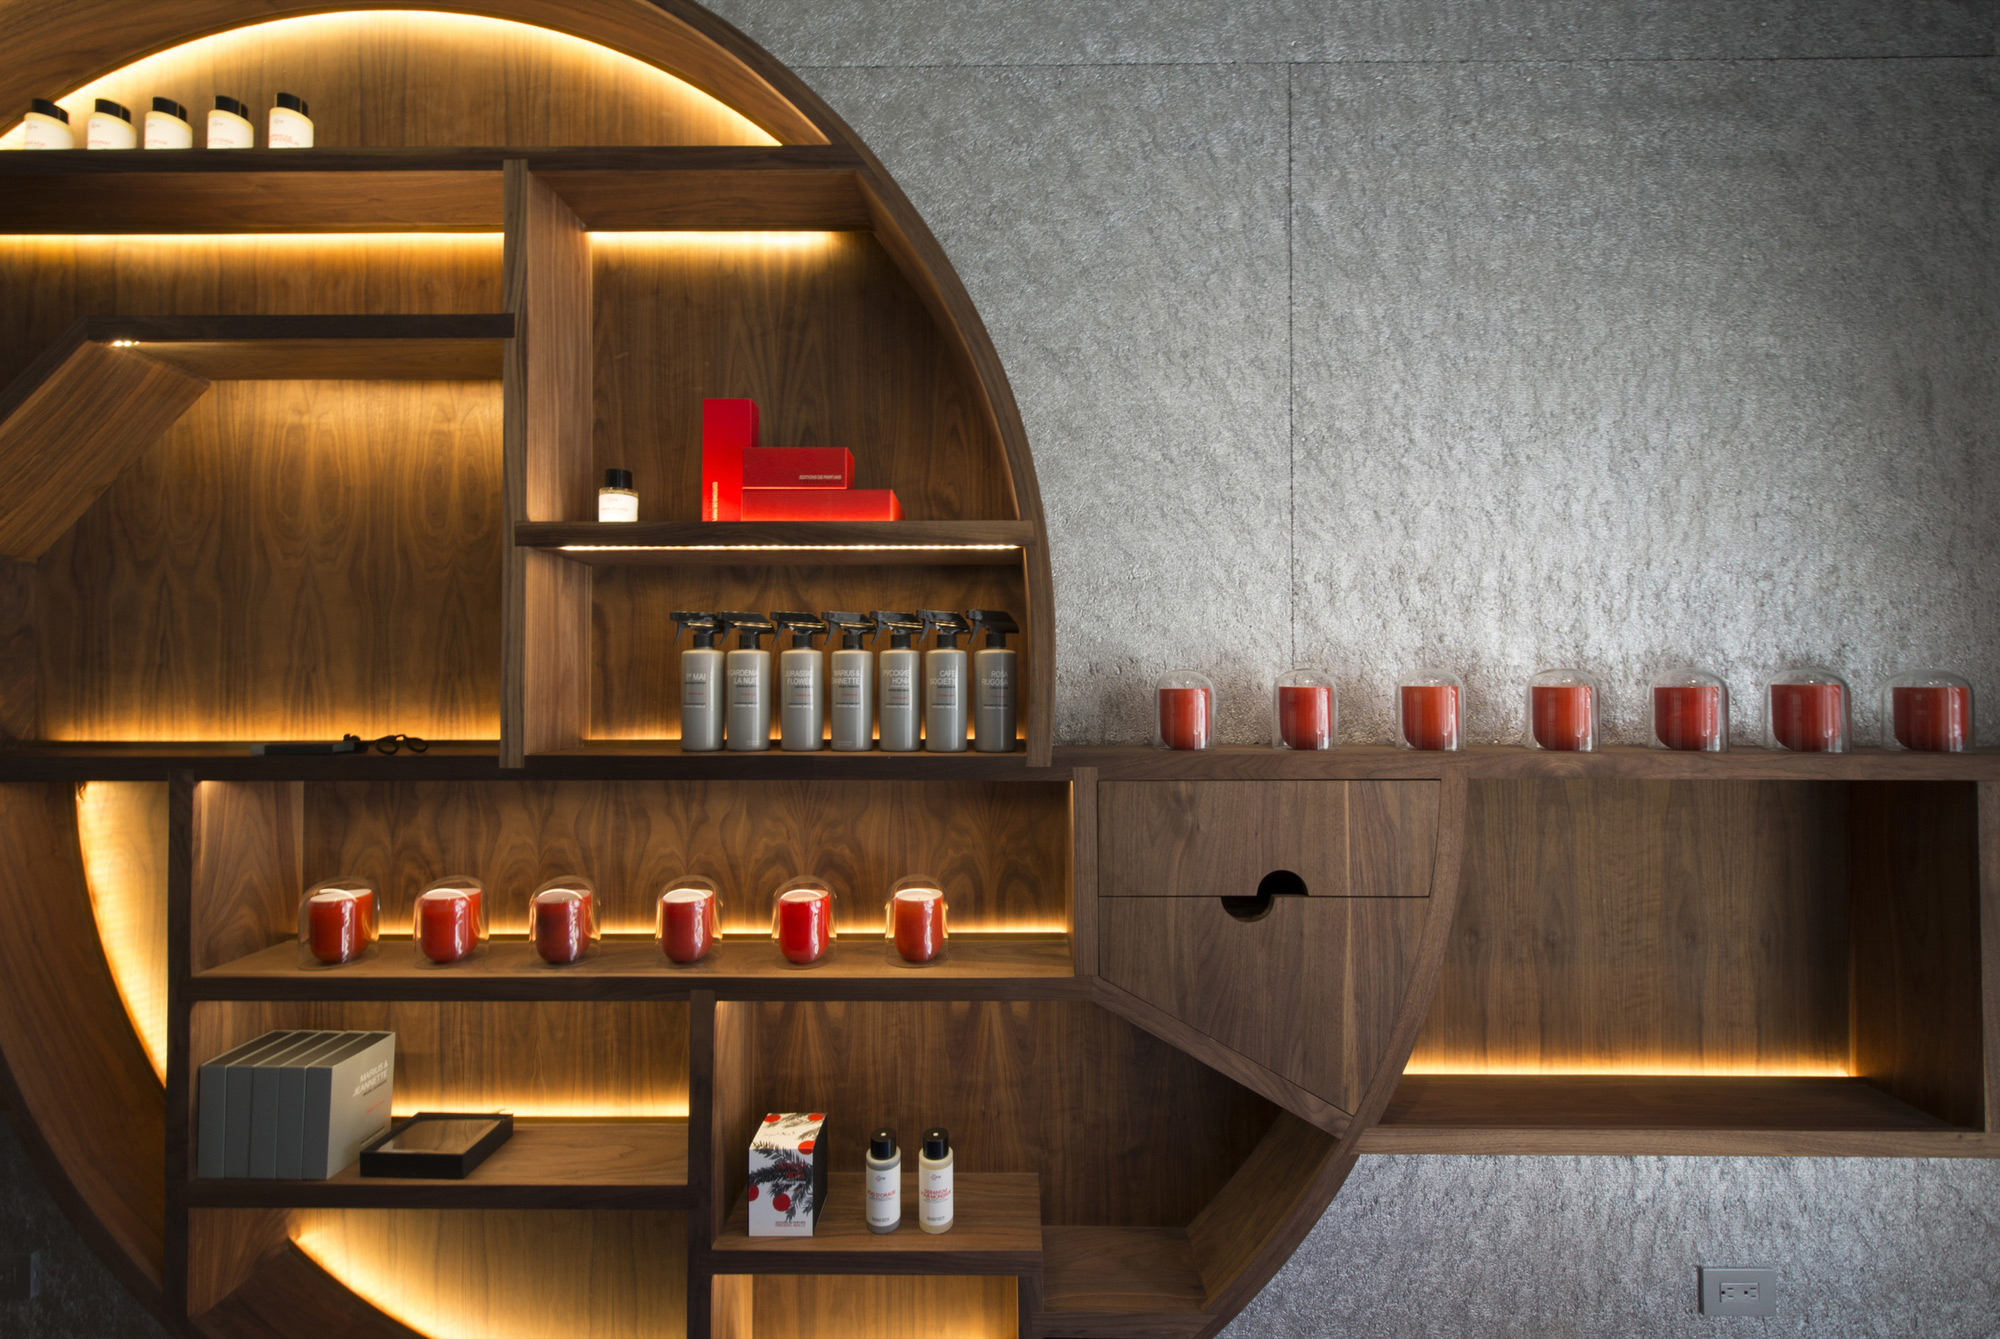 Frederic Malle / Steven Holl Architects (19)